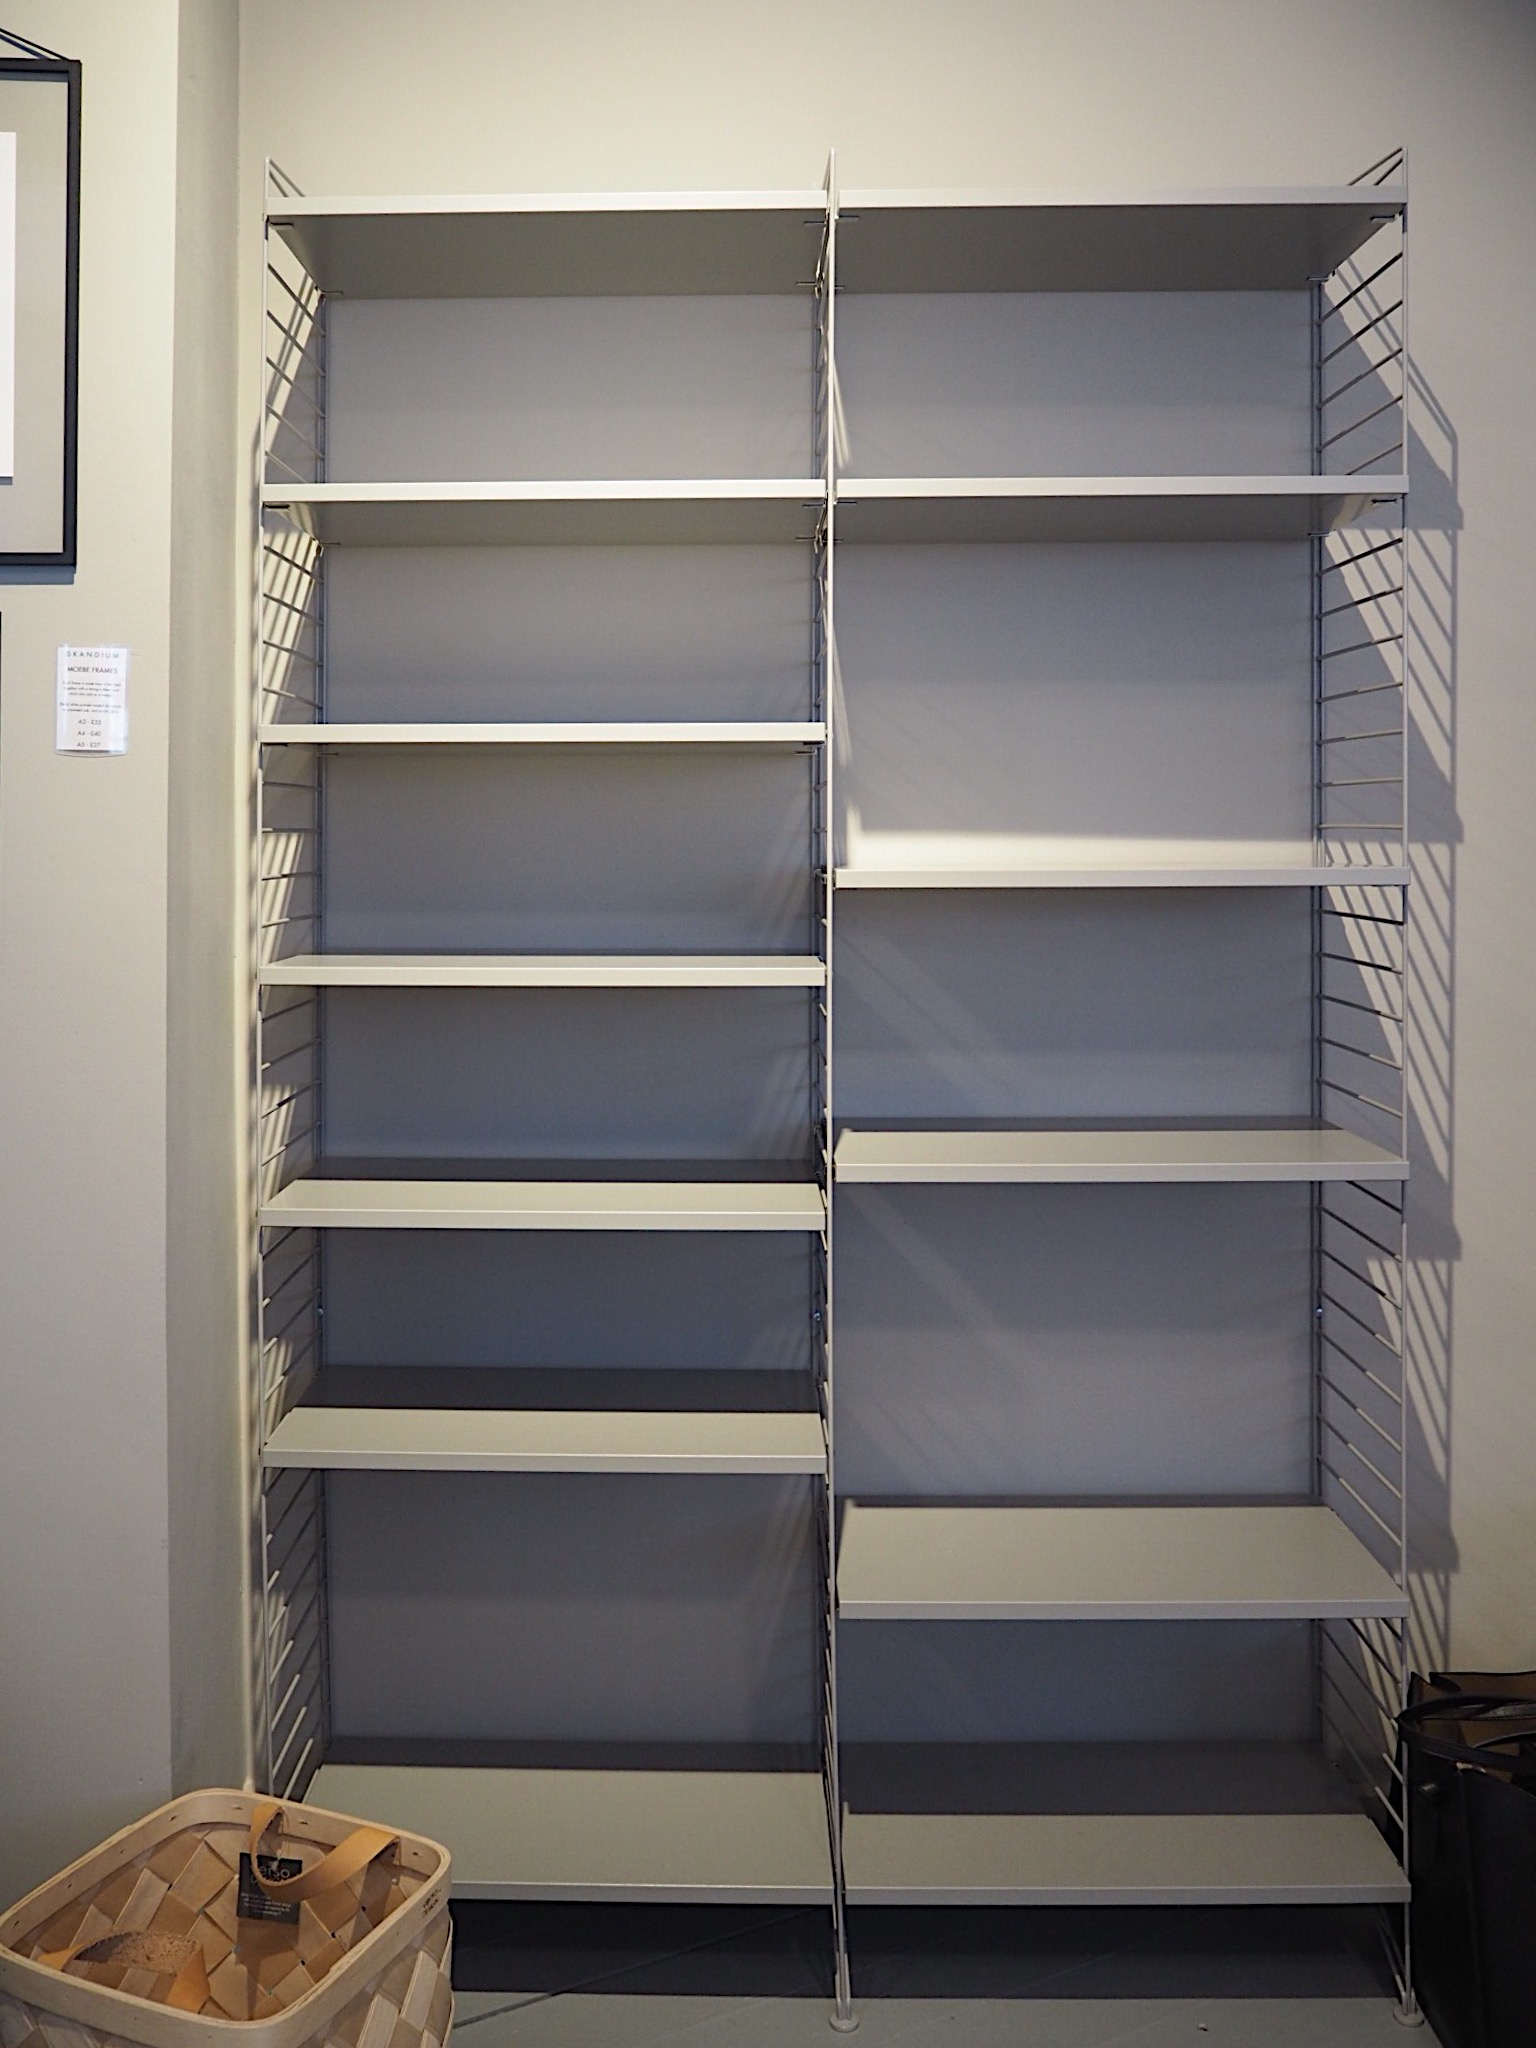 My empty String shelves! All ready for styling.